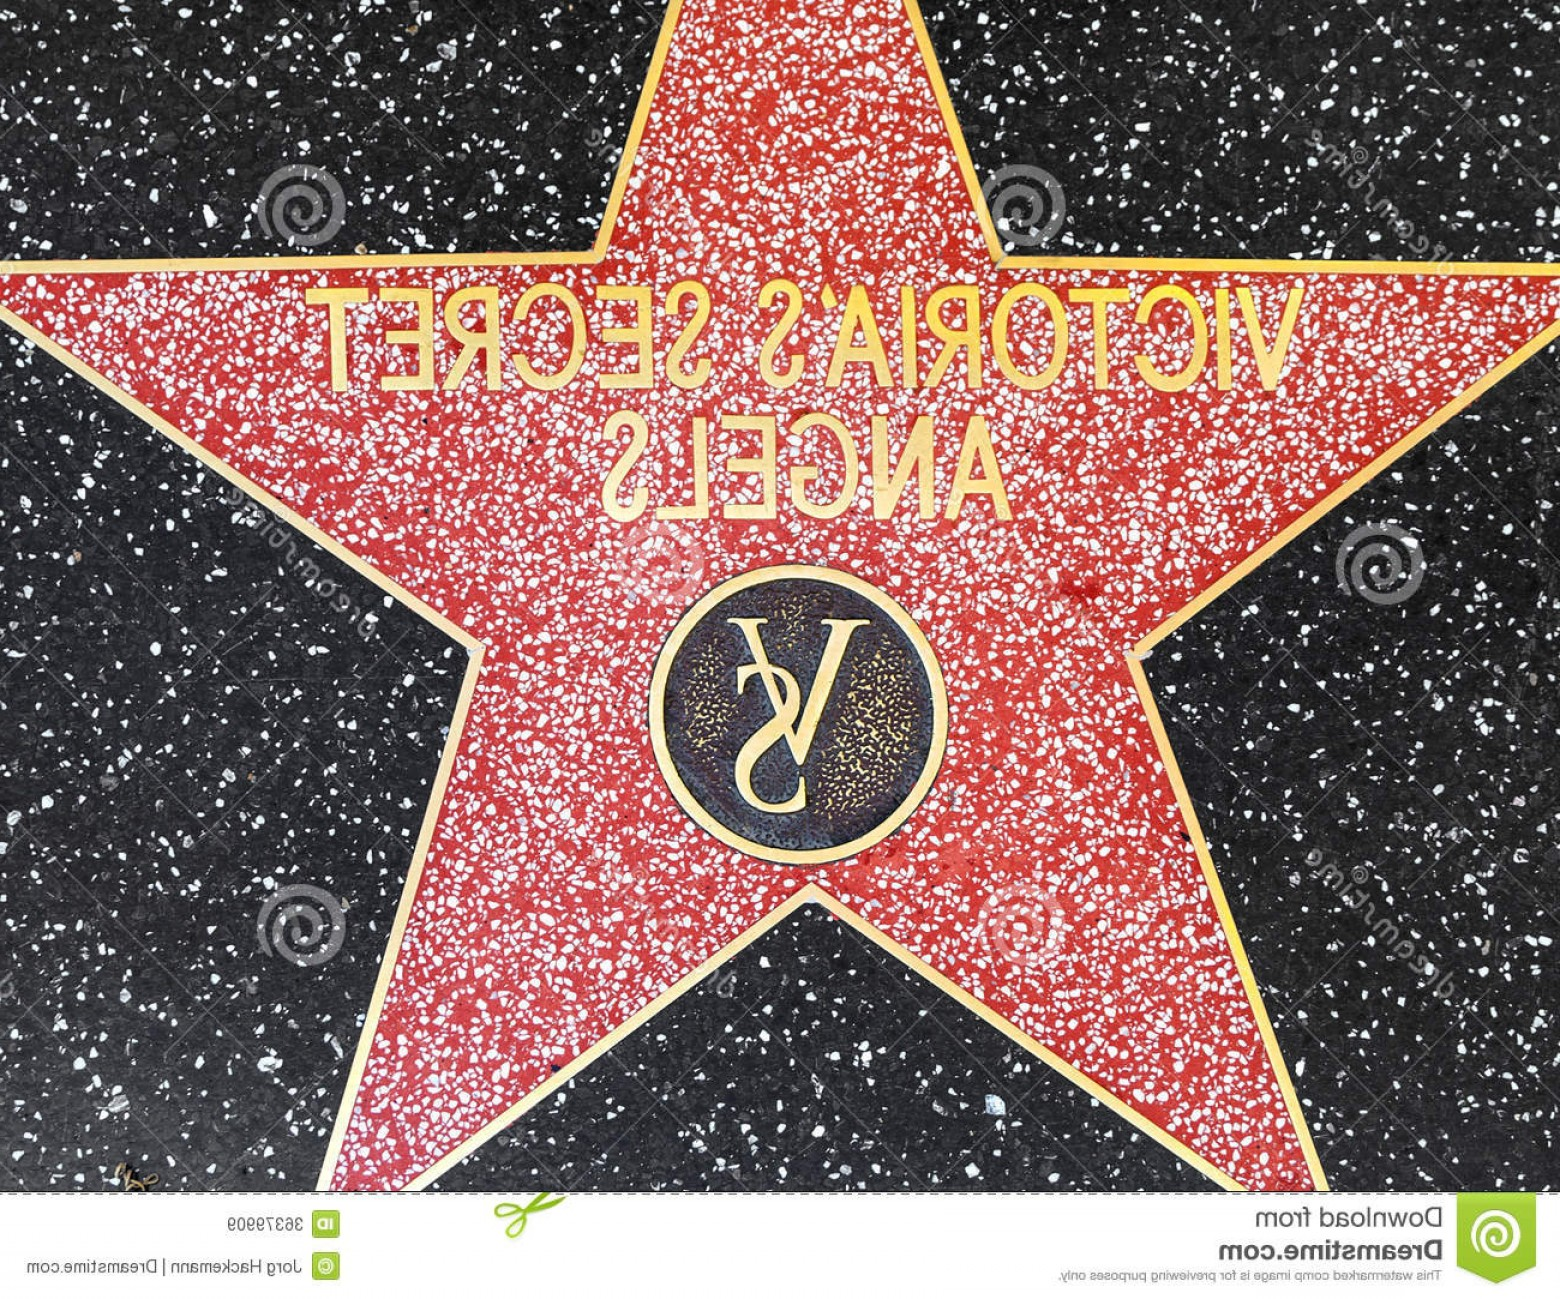 Victoria's Secret Pink Vector: Royalty Free Stock Images Victoria S Secret Angels Star Hollywood Walk Fame Los Angeles June June California Located Image